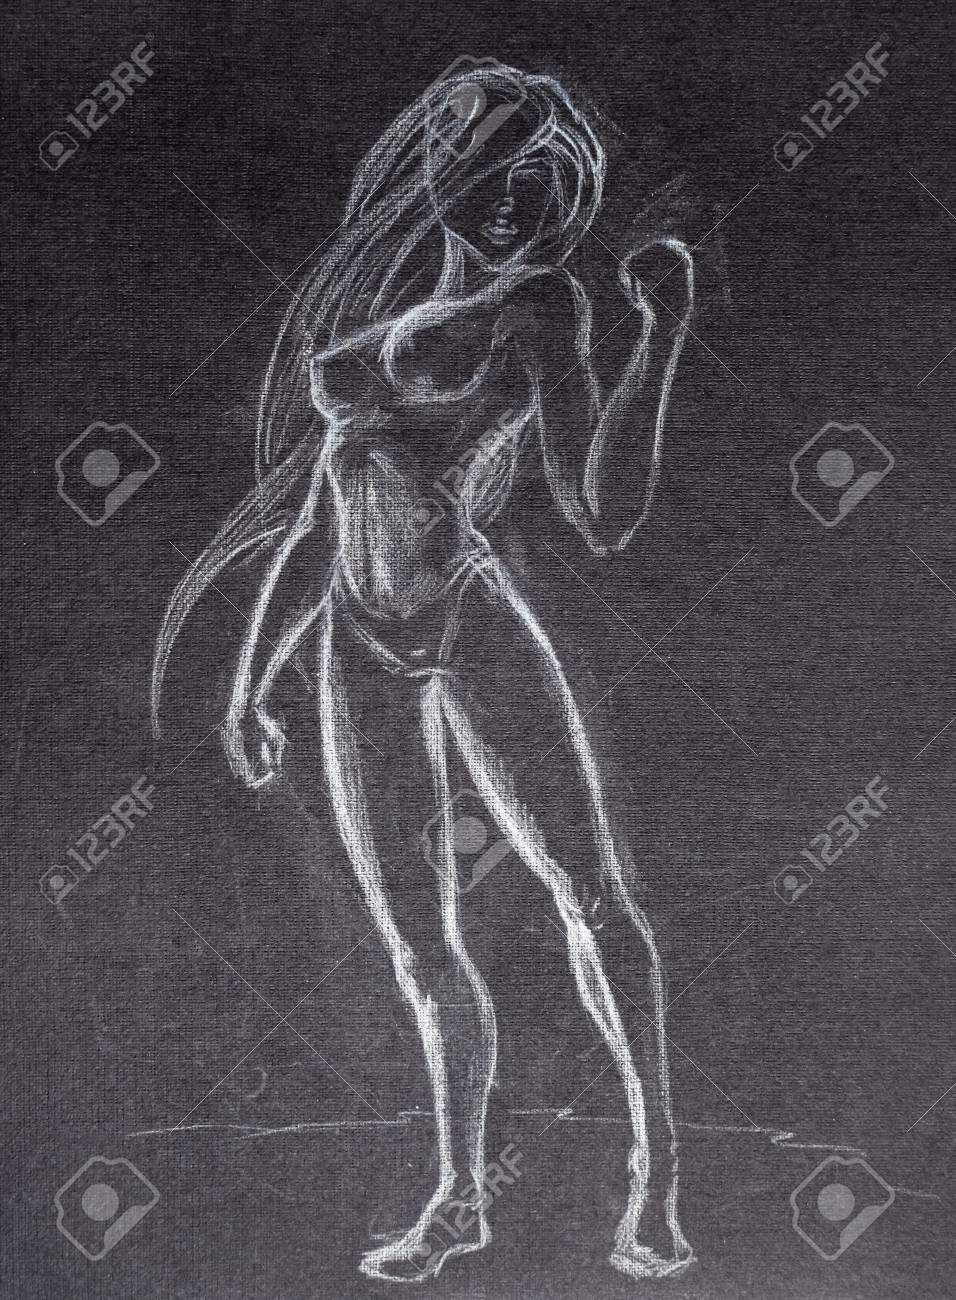 Drawing white pencil on black paper naked girl in a bikini with